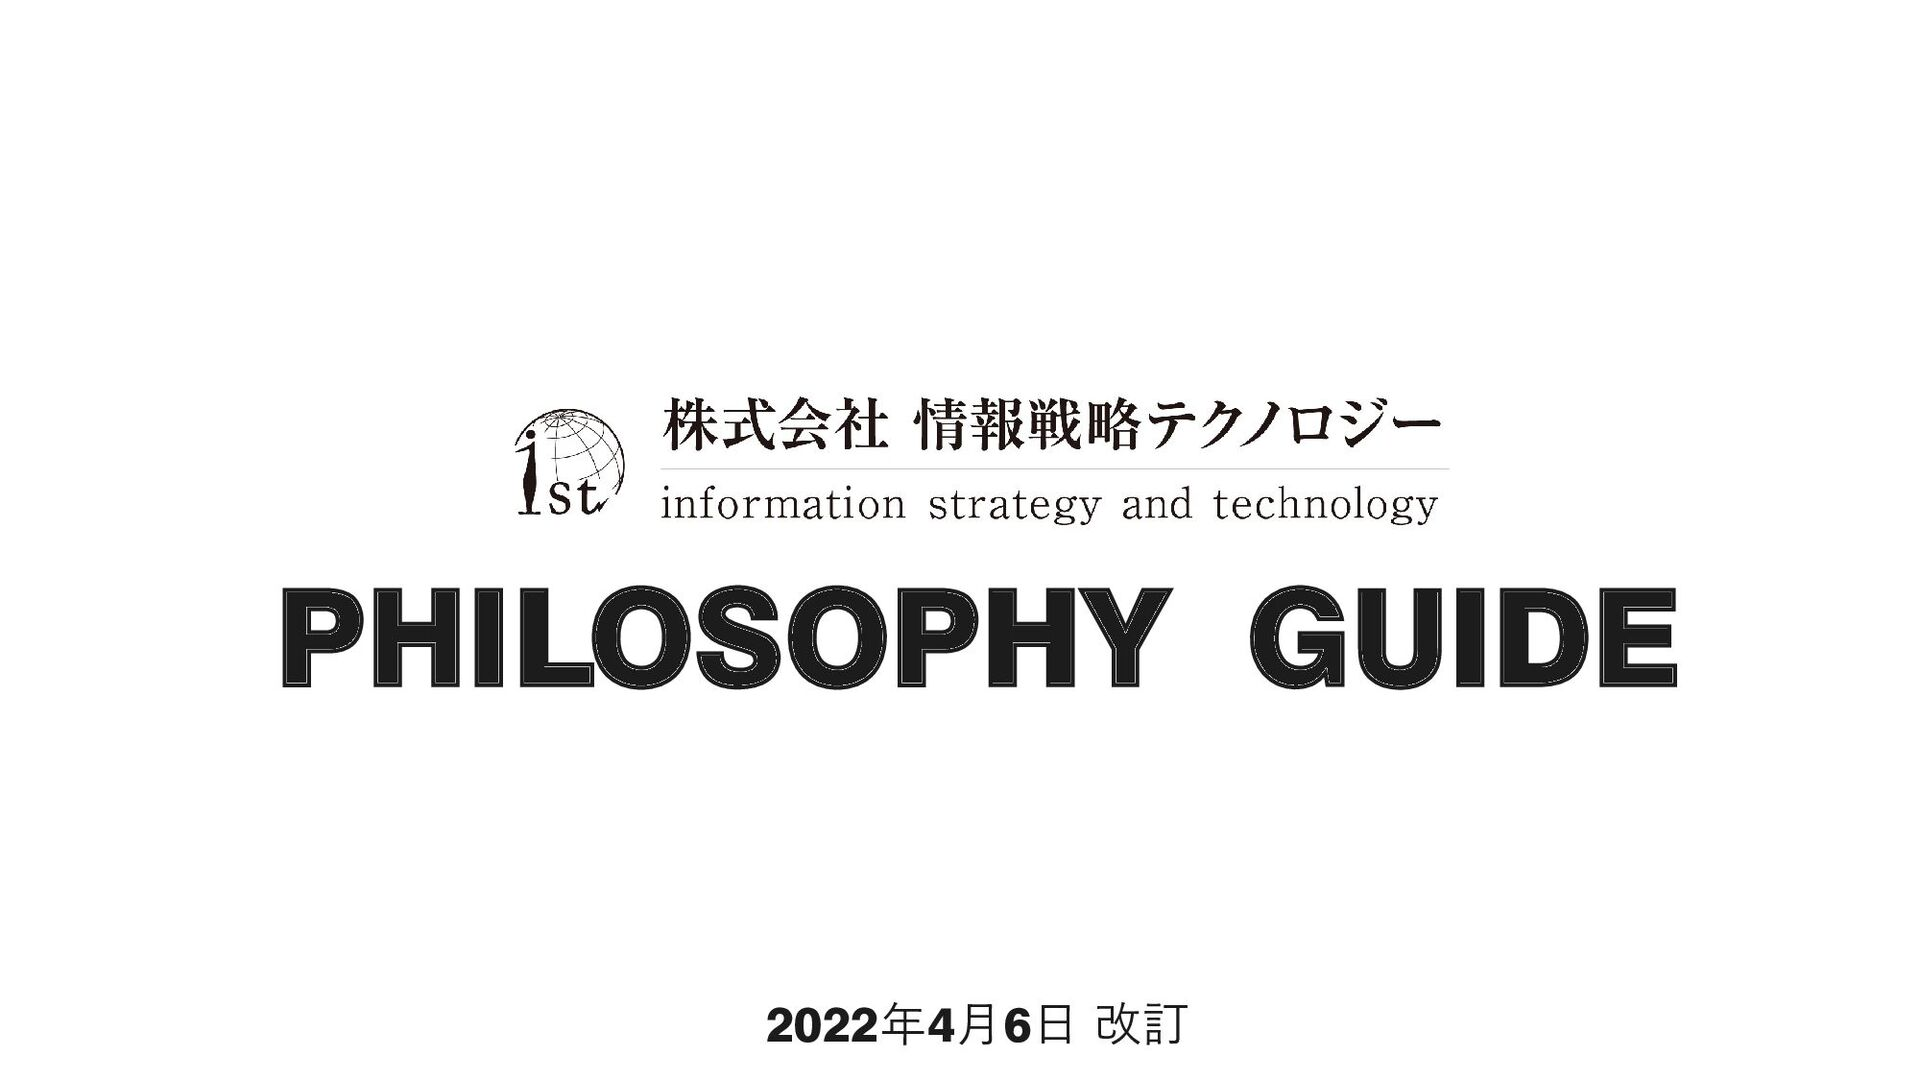 PHILOSOPHY GUIDE (PM/PL向け) 2021年4月9日 更新